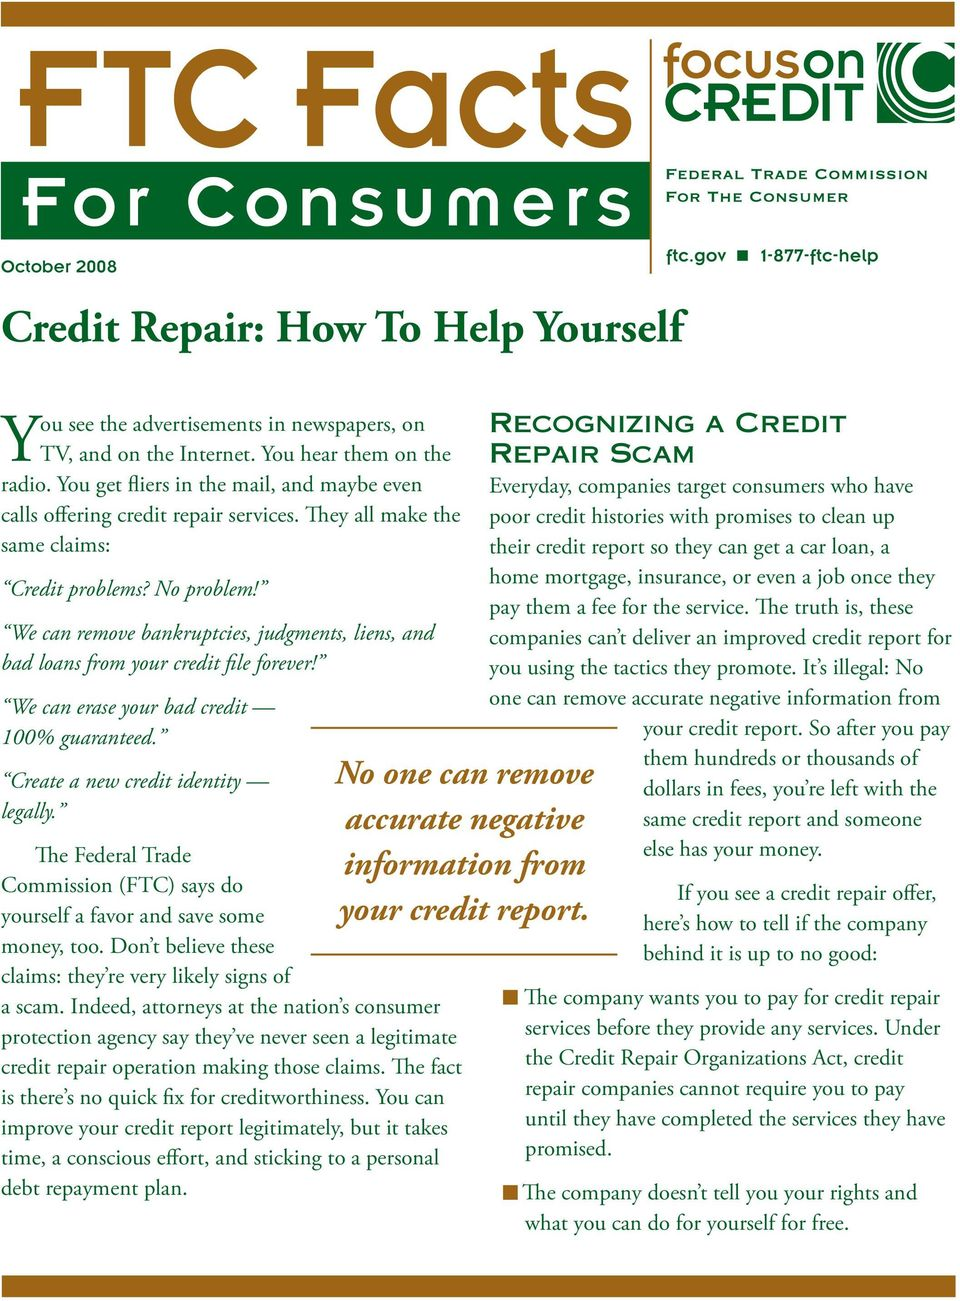 We can remove bankruptcies, judgments, liens, and bad loans from your credit file forever! We can erase your bad credit 100% guaranteed. Create a new credit identity legally.